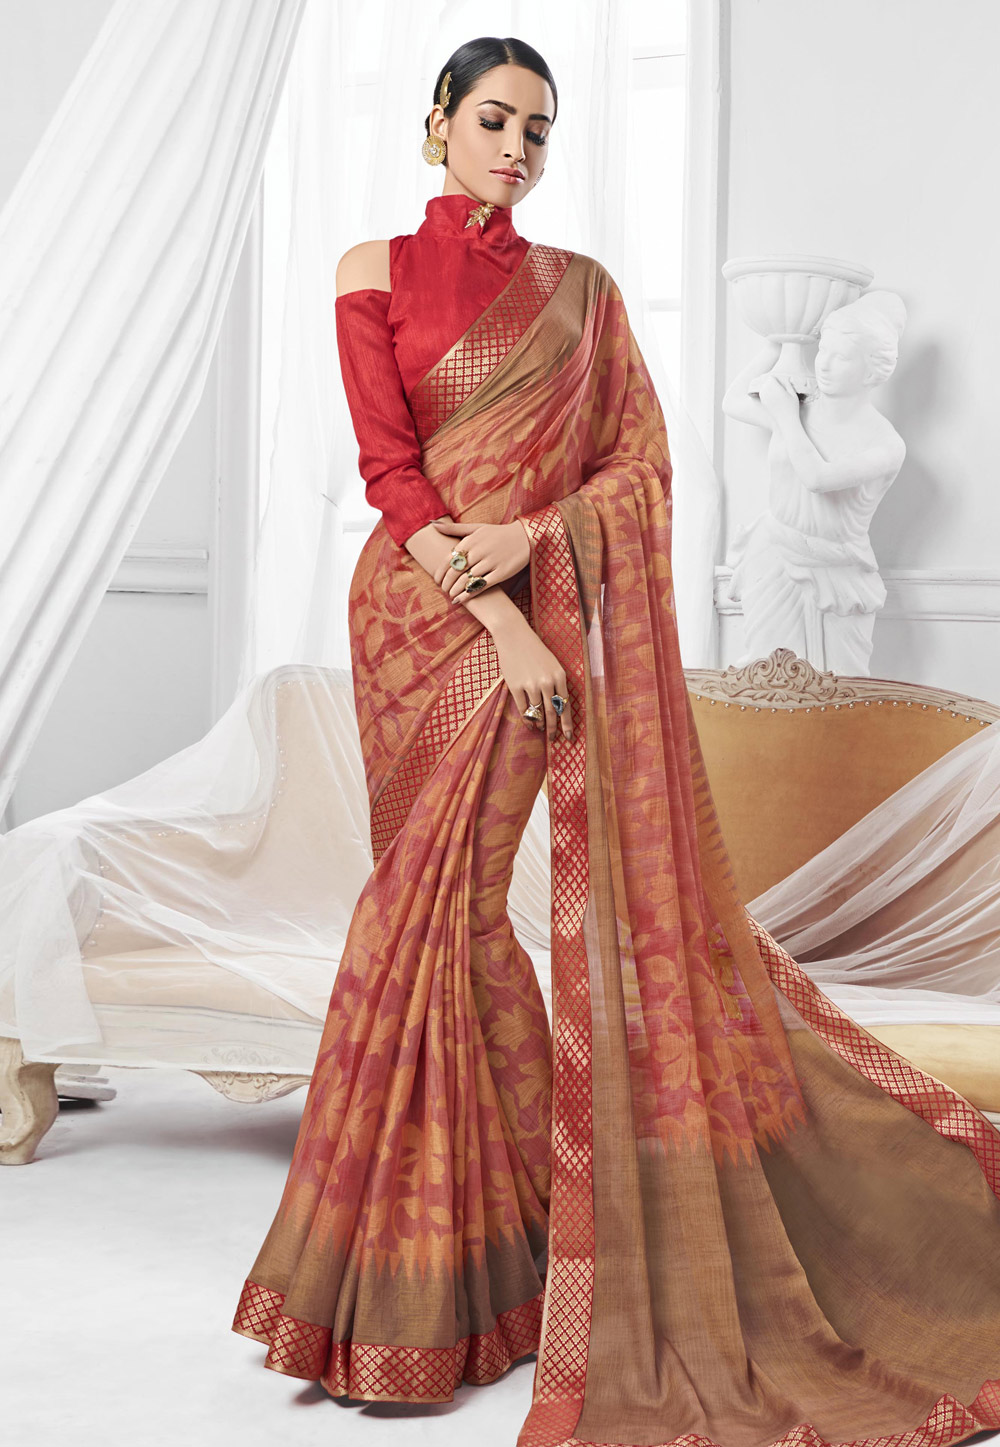 Pink Chiffon Saree With Cold Shoulder Blouse 154058